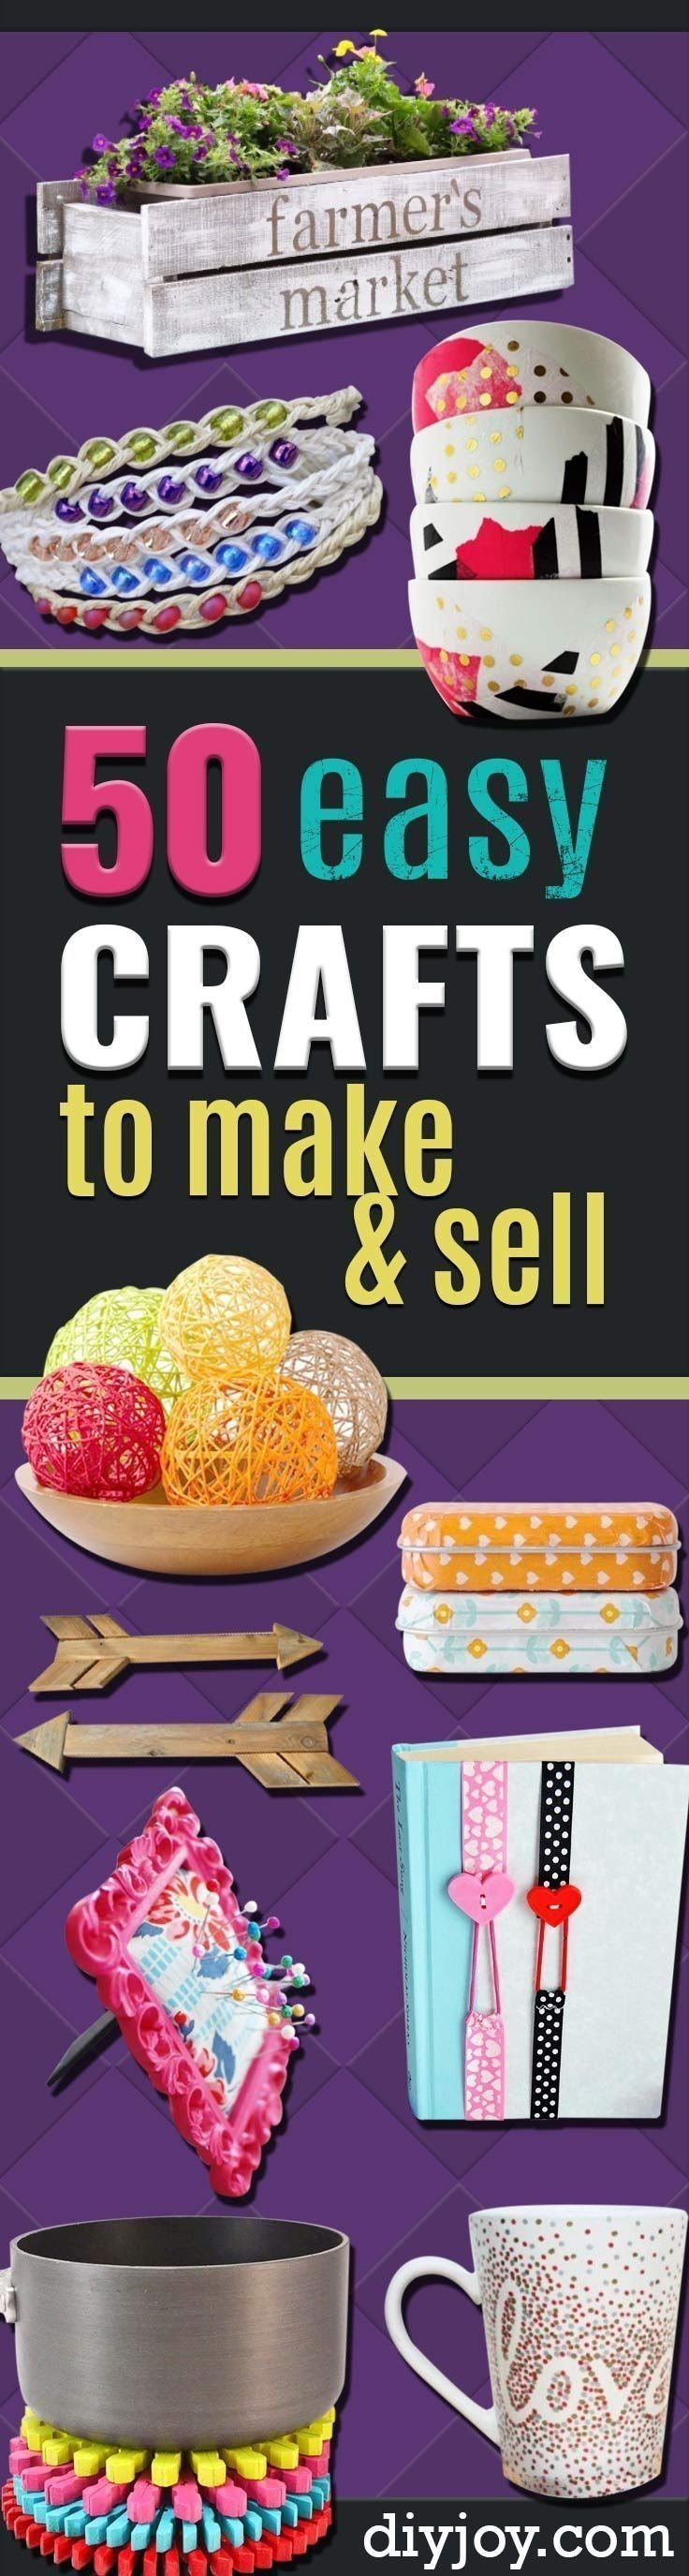 10 Lovable Craft Ideas To Make And Sell From Home 491 Best Things